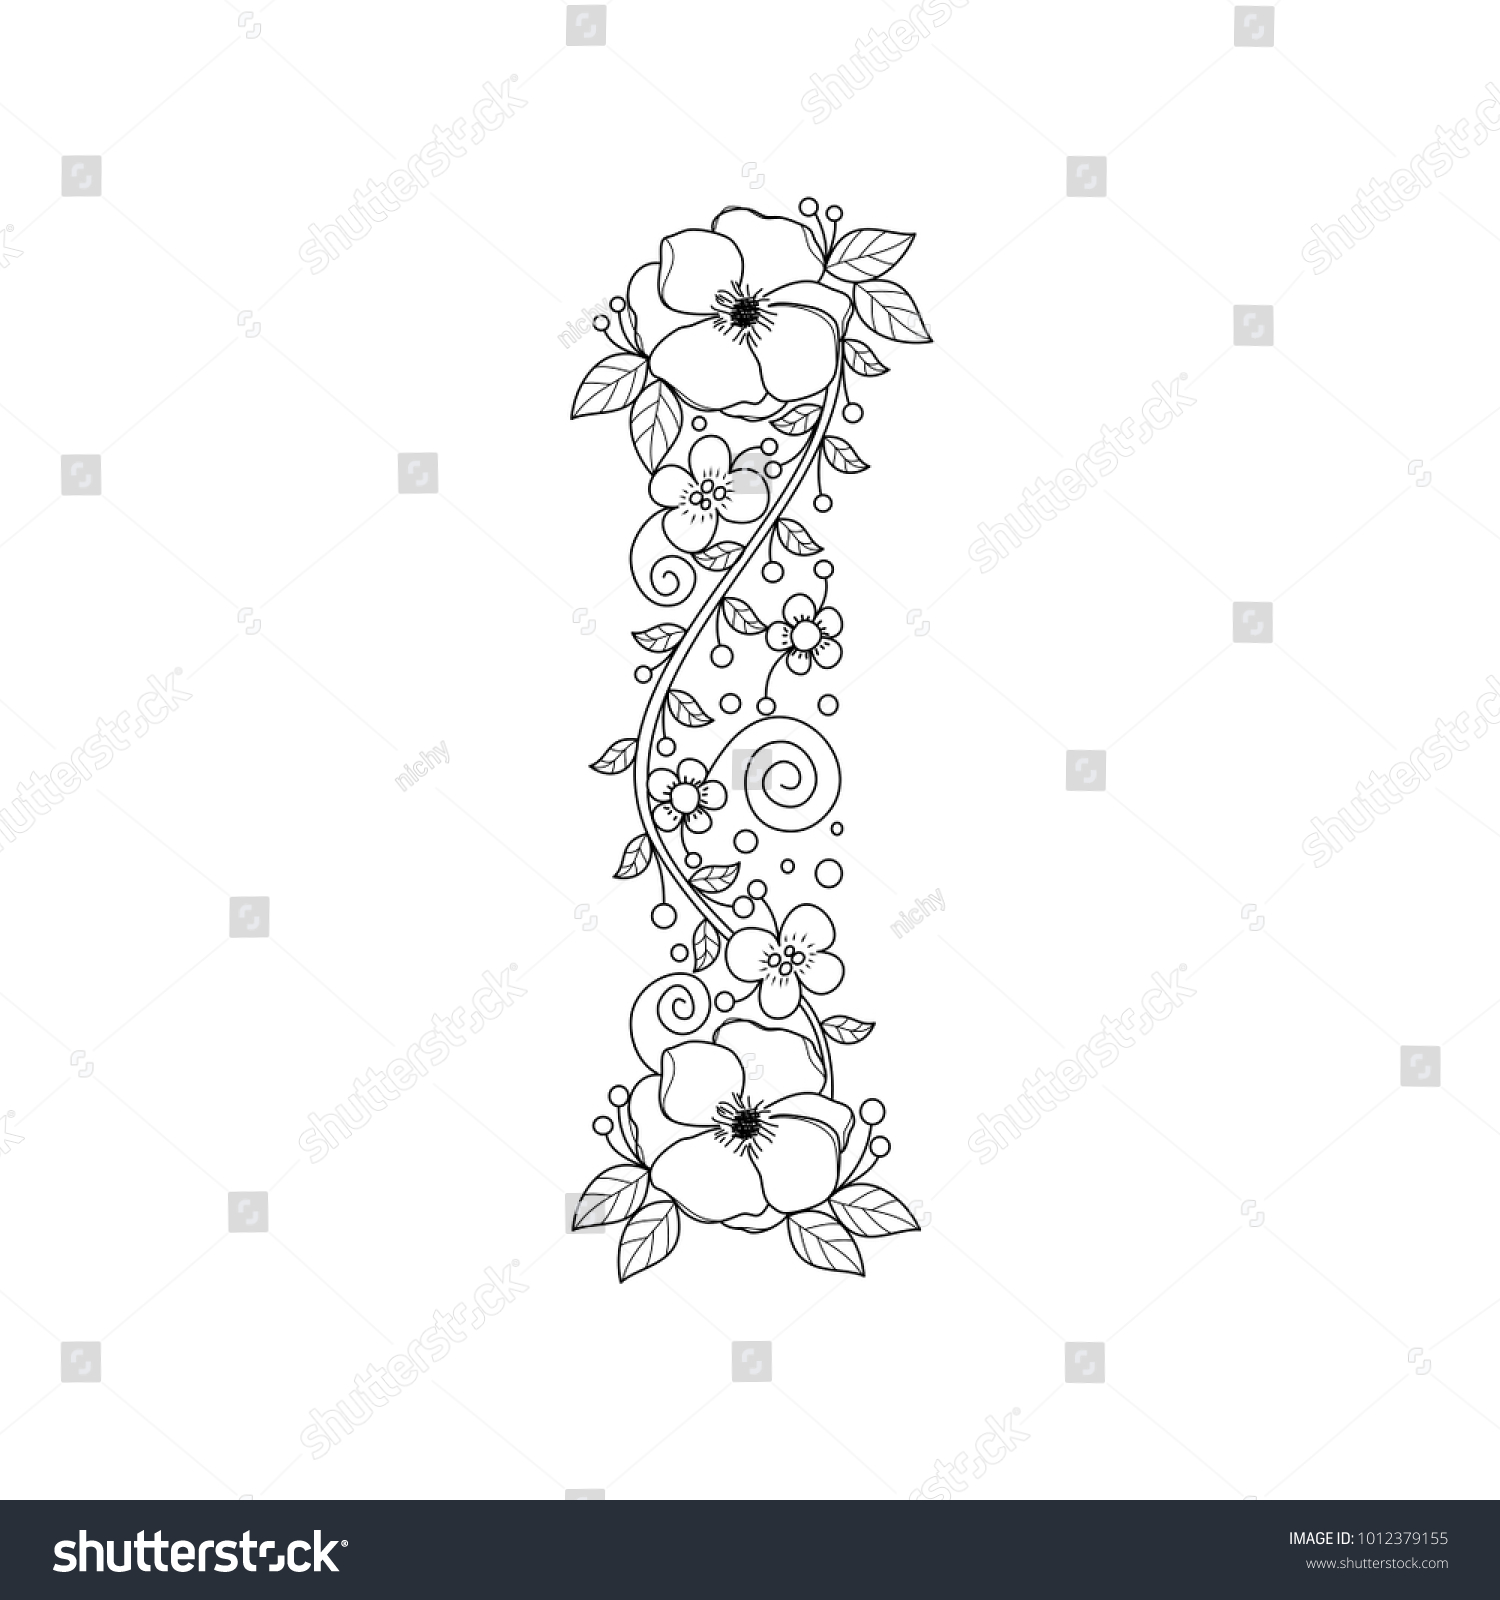 - Floral Alphabet Letter Coloring Book Adults Stock Vector (Royalty